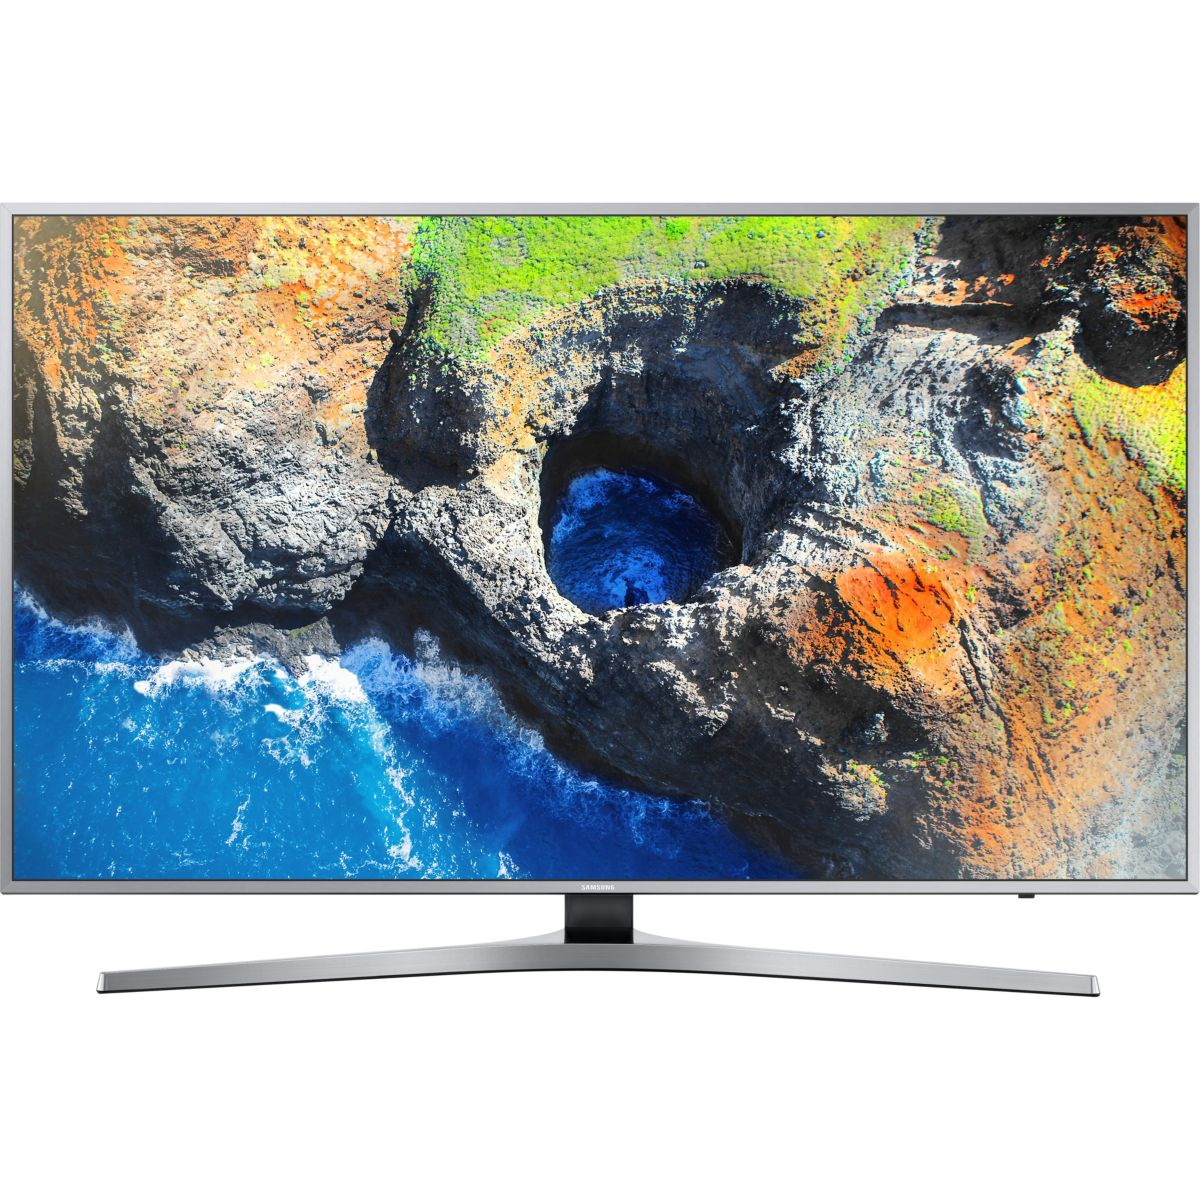 TV SAMSUNG UE40MU6405 4K HDR SMART CRYST